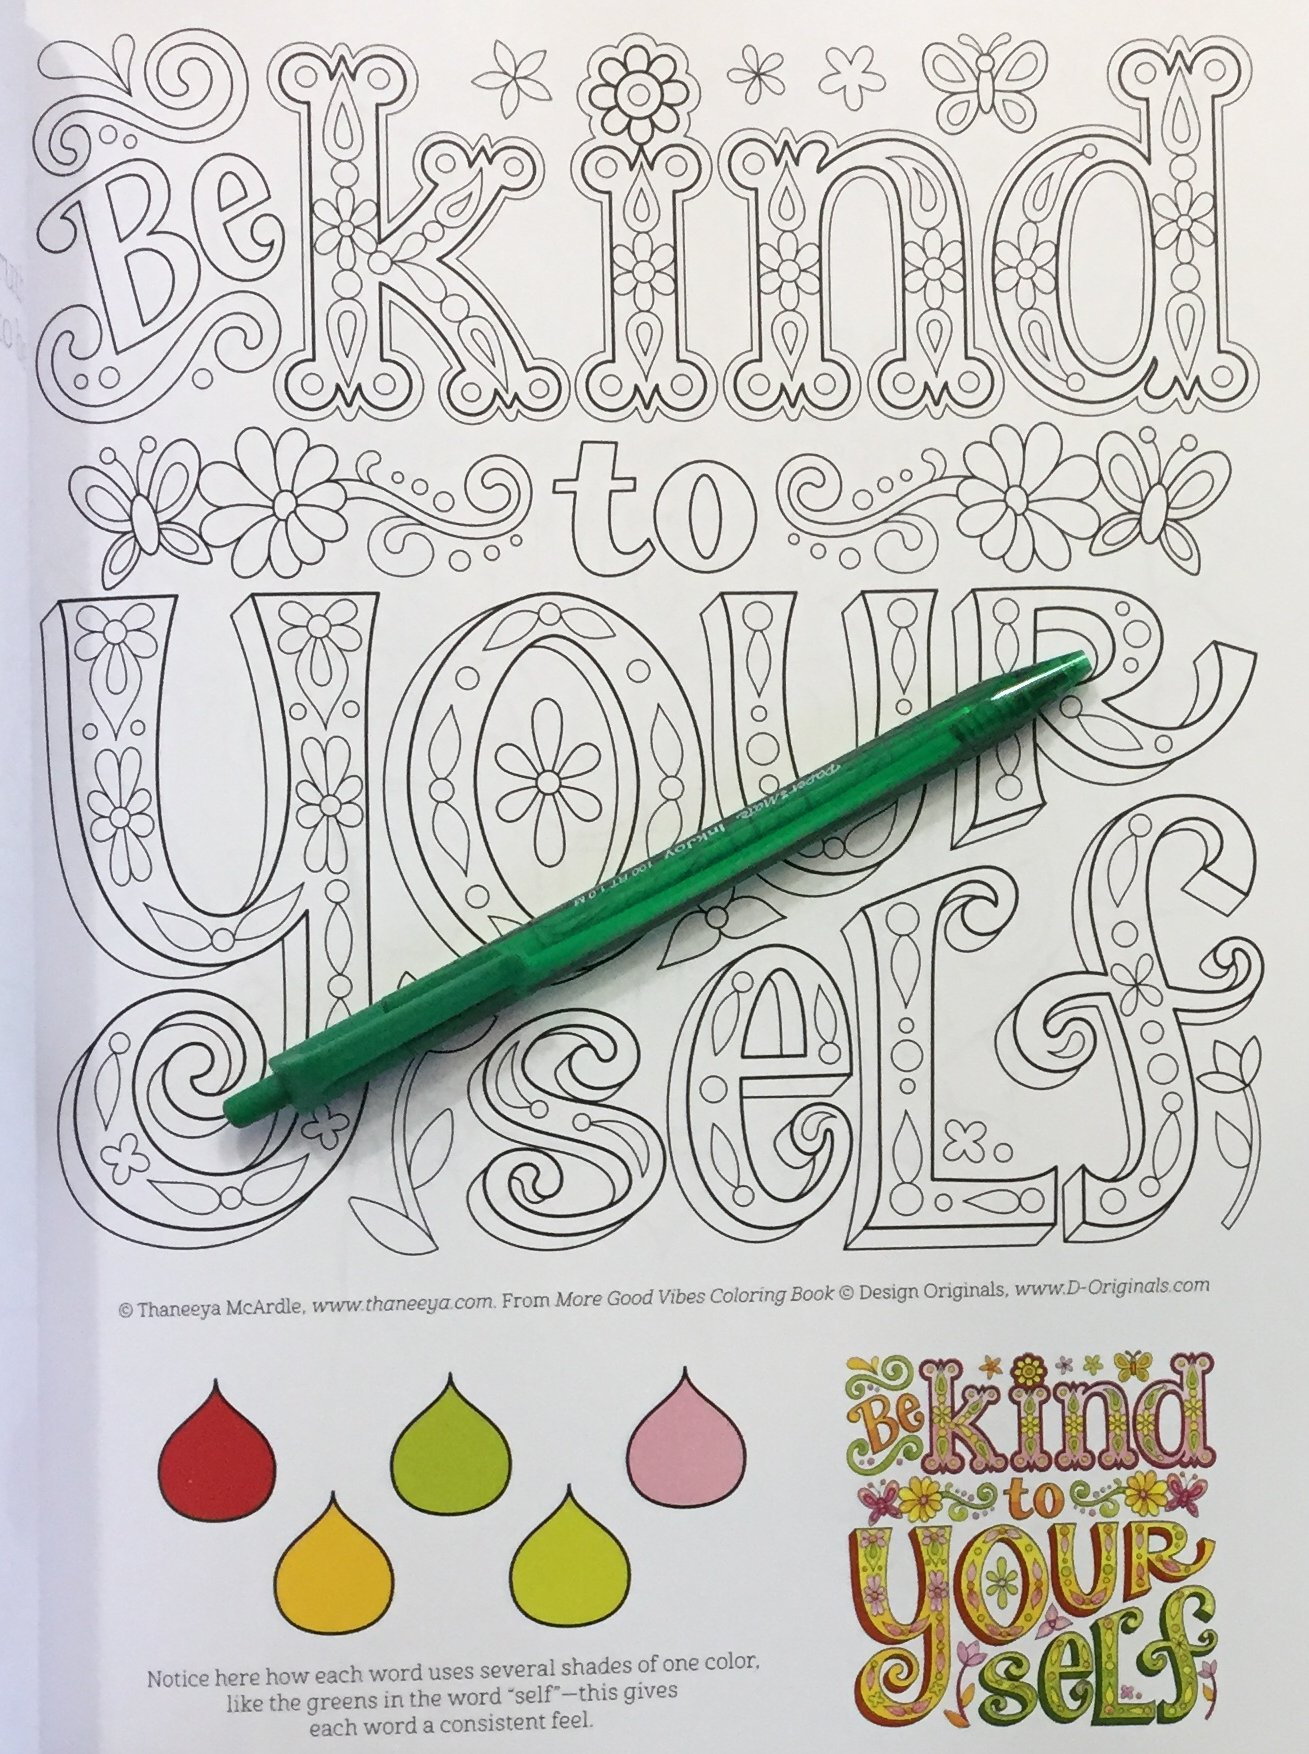 Here Are Some Sample Photos From The Coloring Book